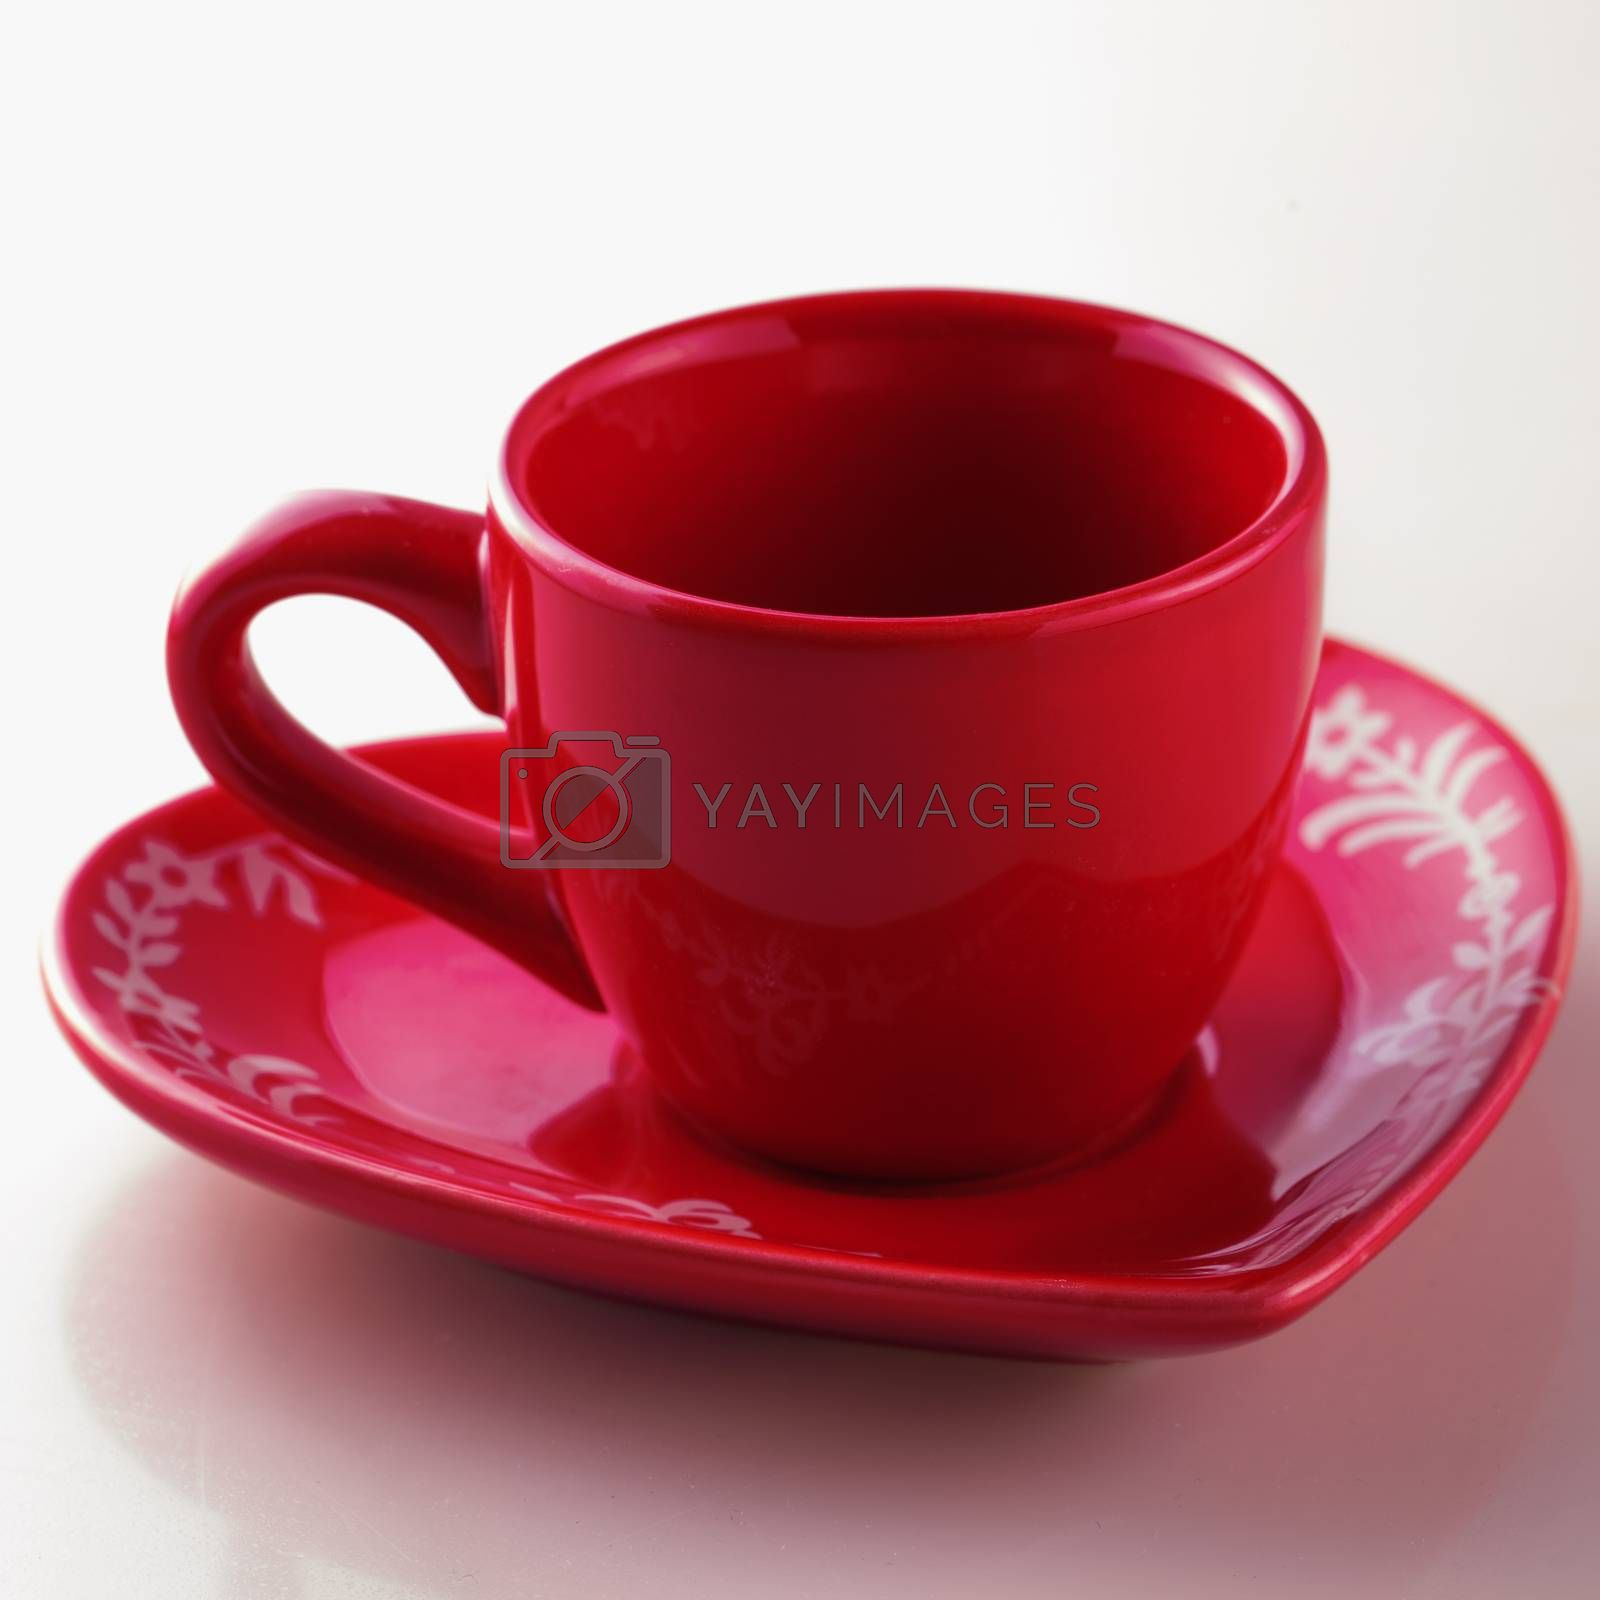 Royalty free image of Red cup by Koufax73